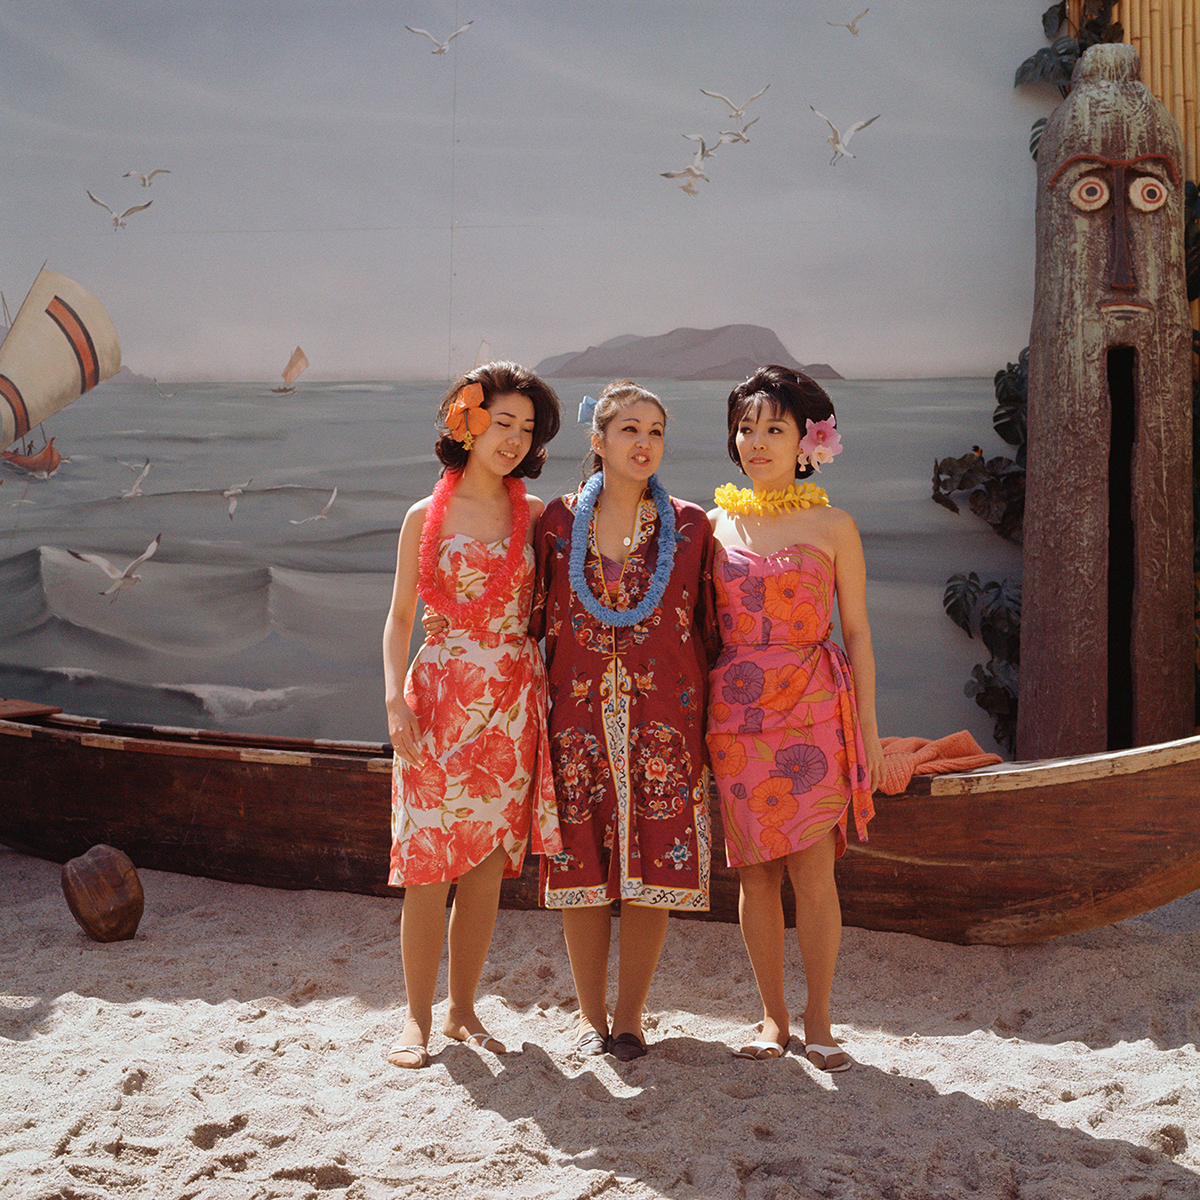 Jerry Kean (Gerald J. Kwapich Kean)   Toledo, Ohio – Sunnyside, New York, 1937- 2014 Collection of the Queens Museum; gift of Jerry Kean Hula Girls at Aloha Theater, Hawaii Pavilion, 1964